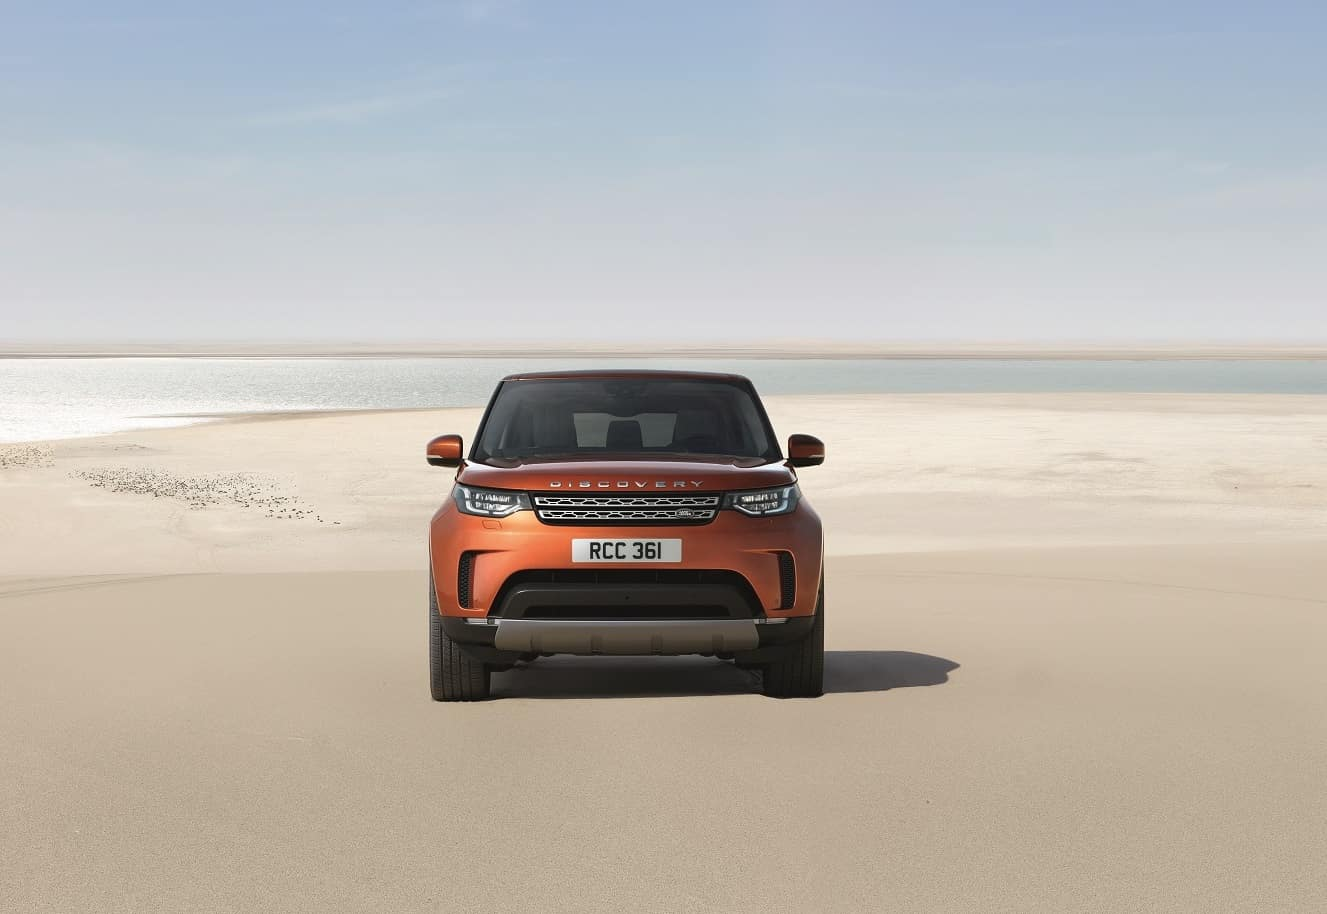 About the Land Rover Discovery